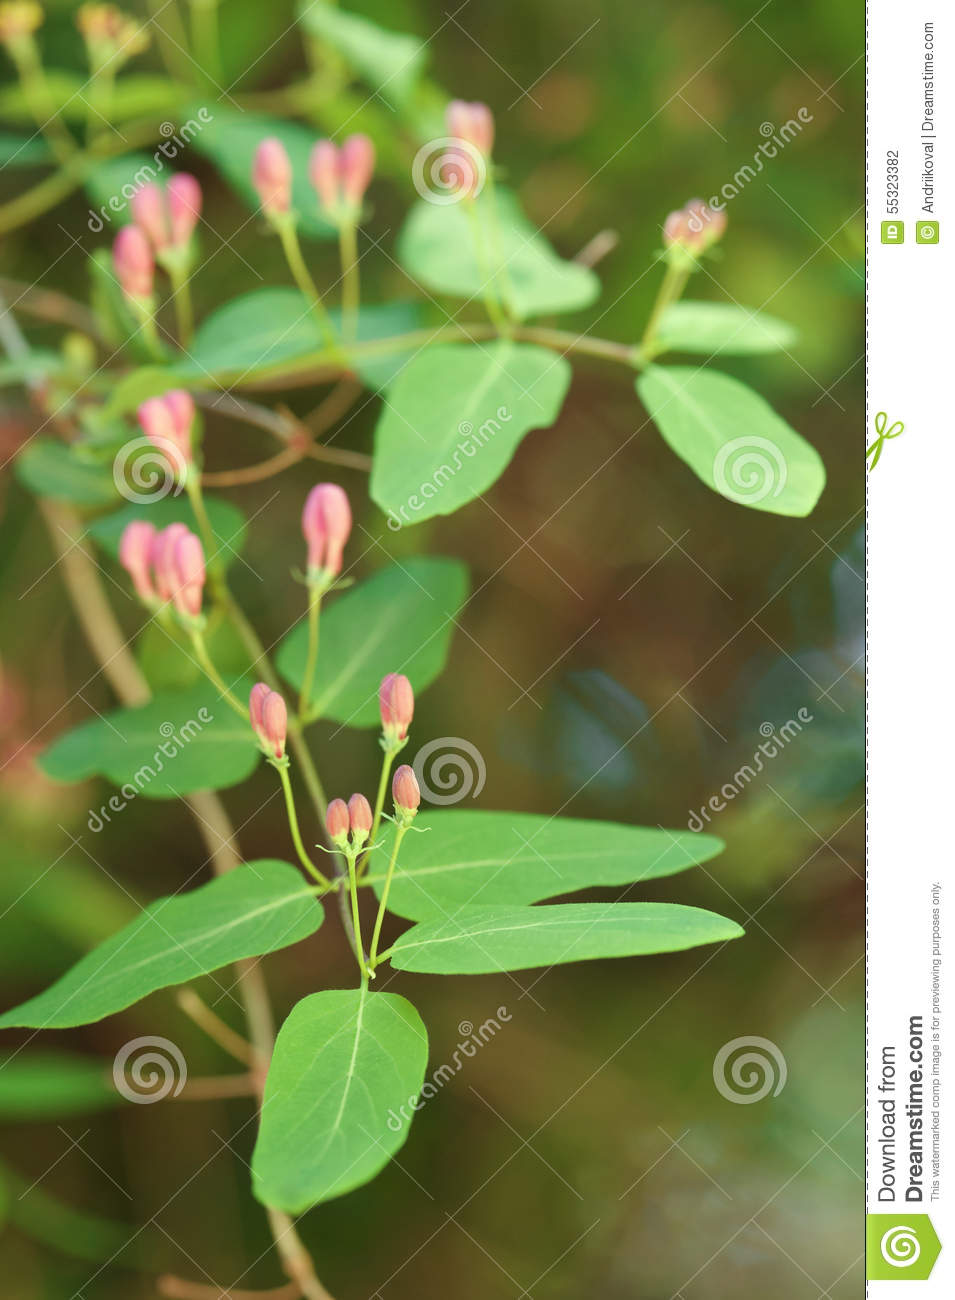 Bush with small pink flowers stock photo 55323382 megapixl bush with small pink flowers mightylinksfo